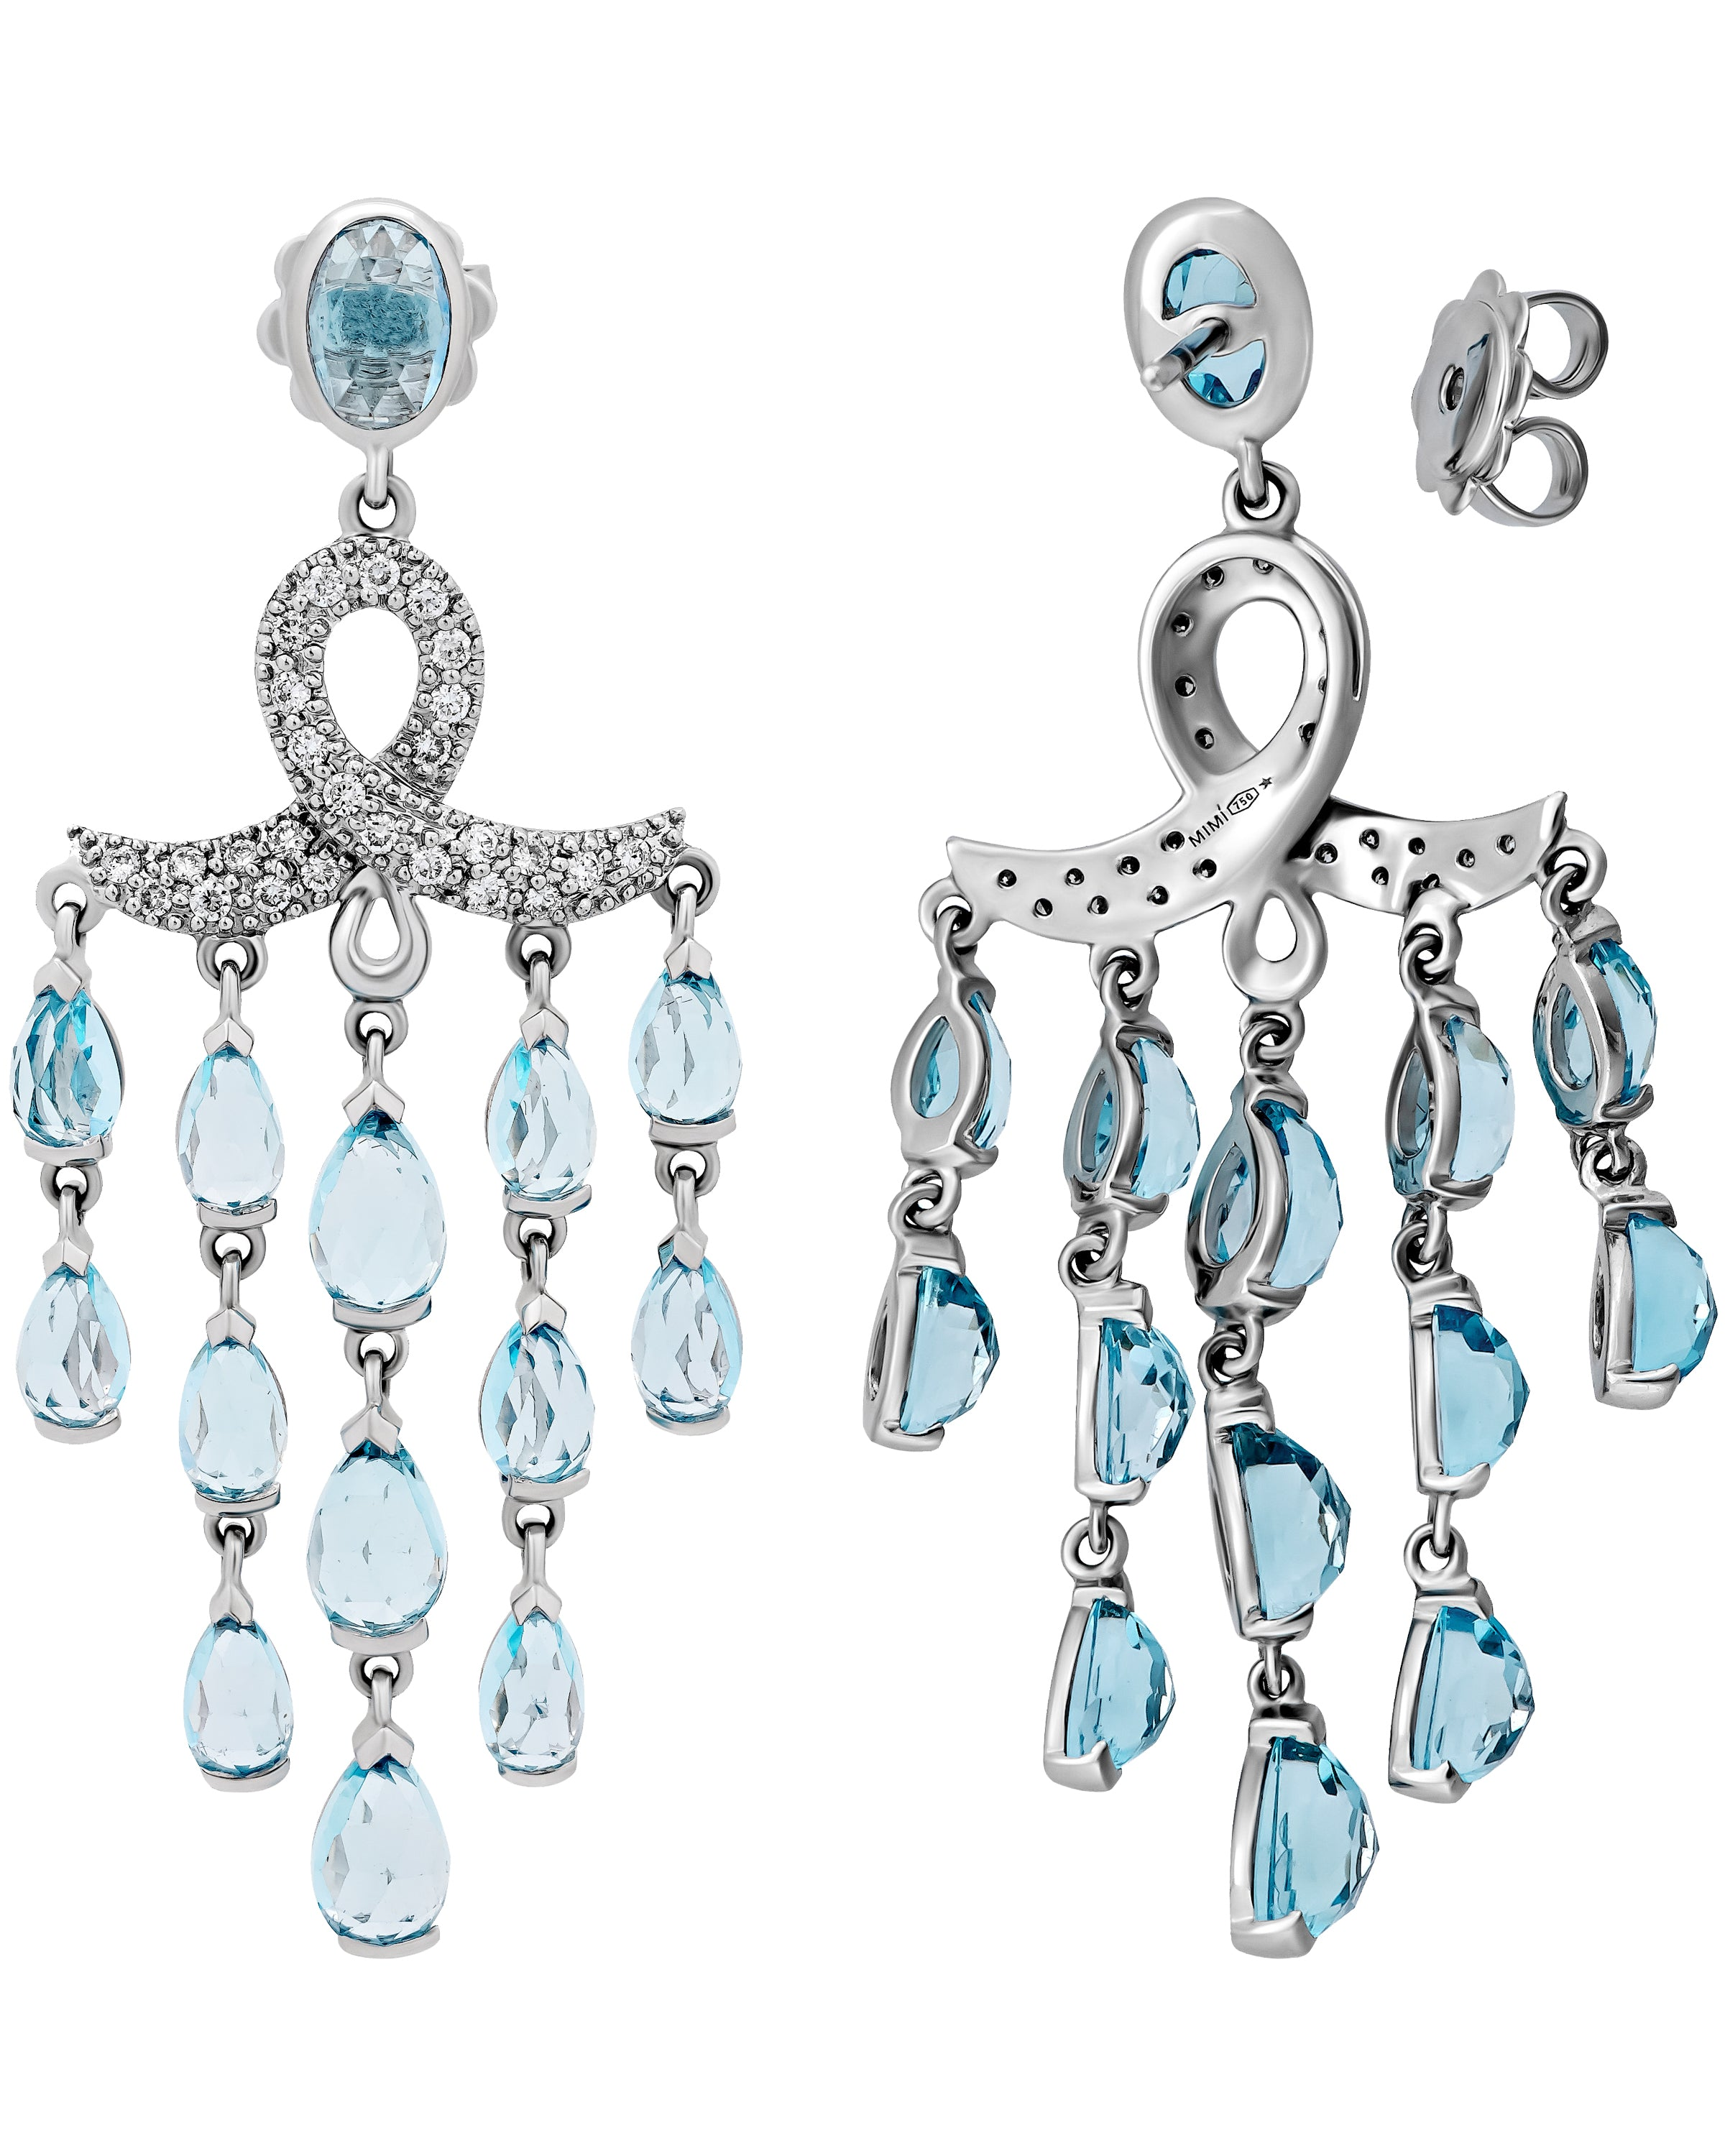 Mimi Milano 18K White Gold, Diamonds and Sky Blue Topaz Earrings O382B8TB